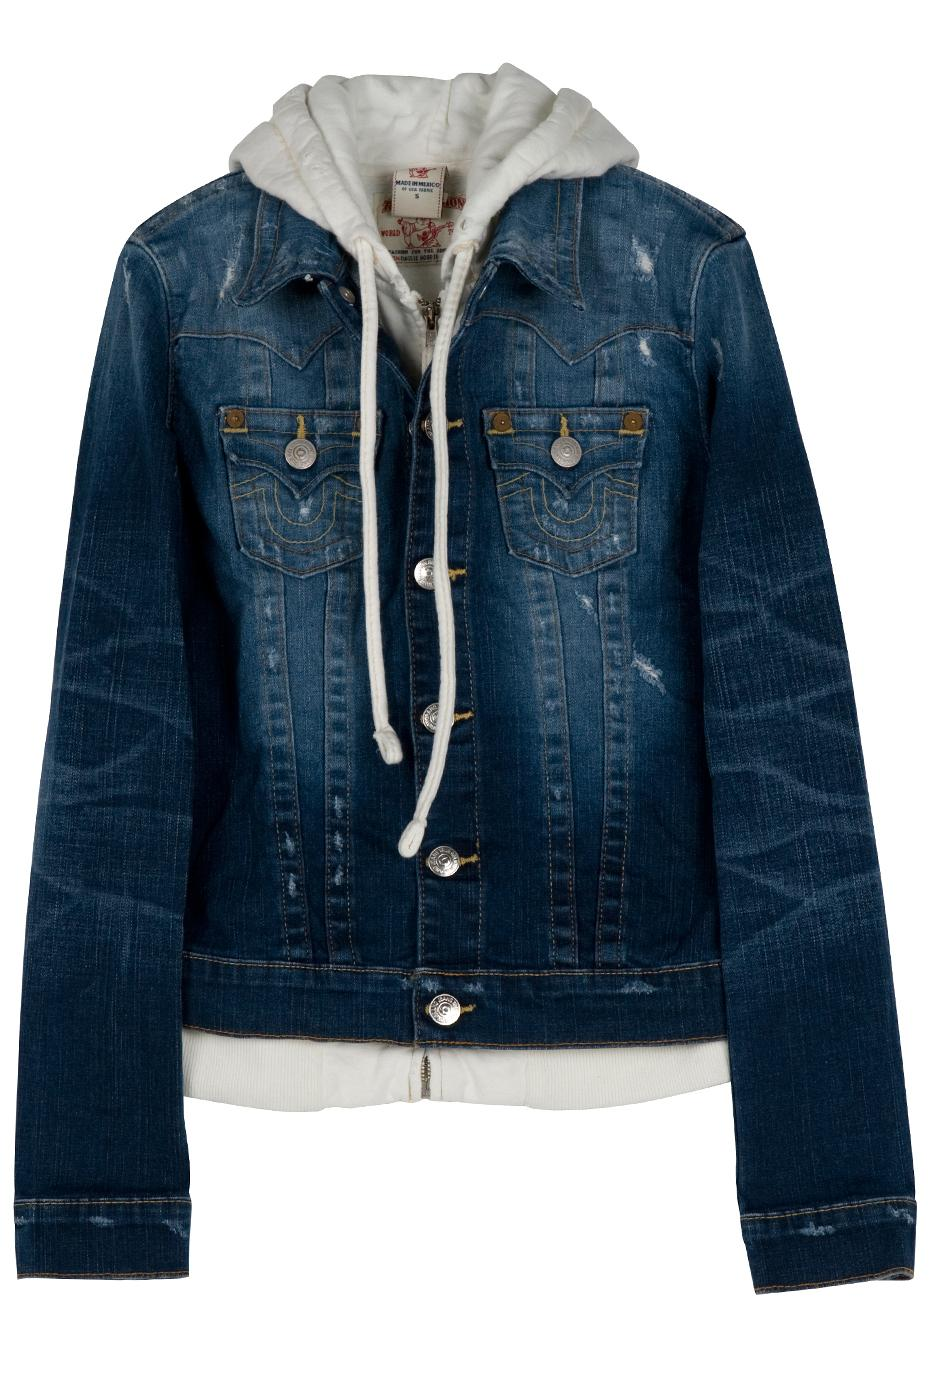 true religion jean jacket related keywords true religion